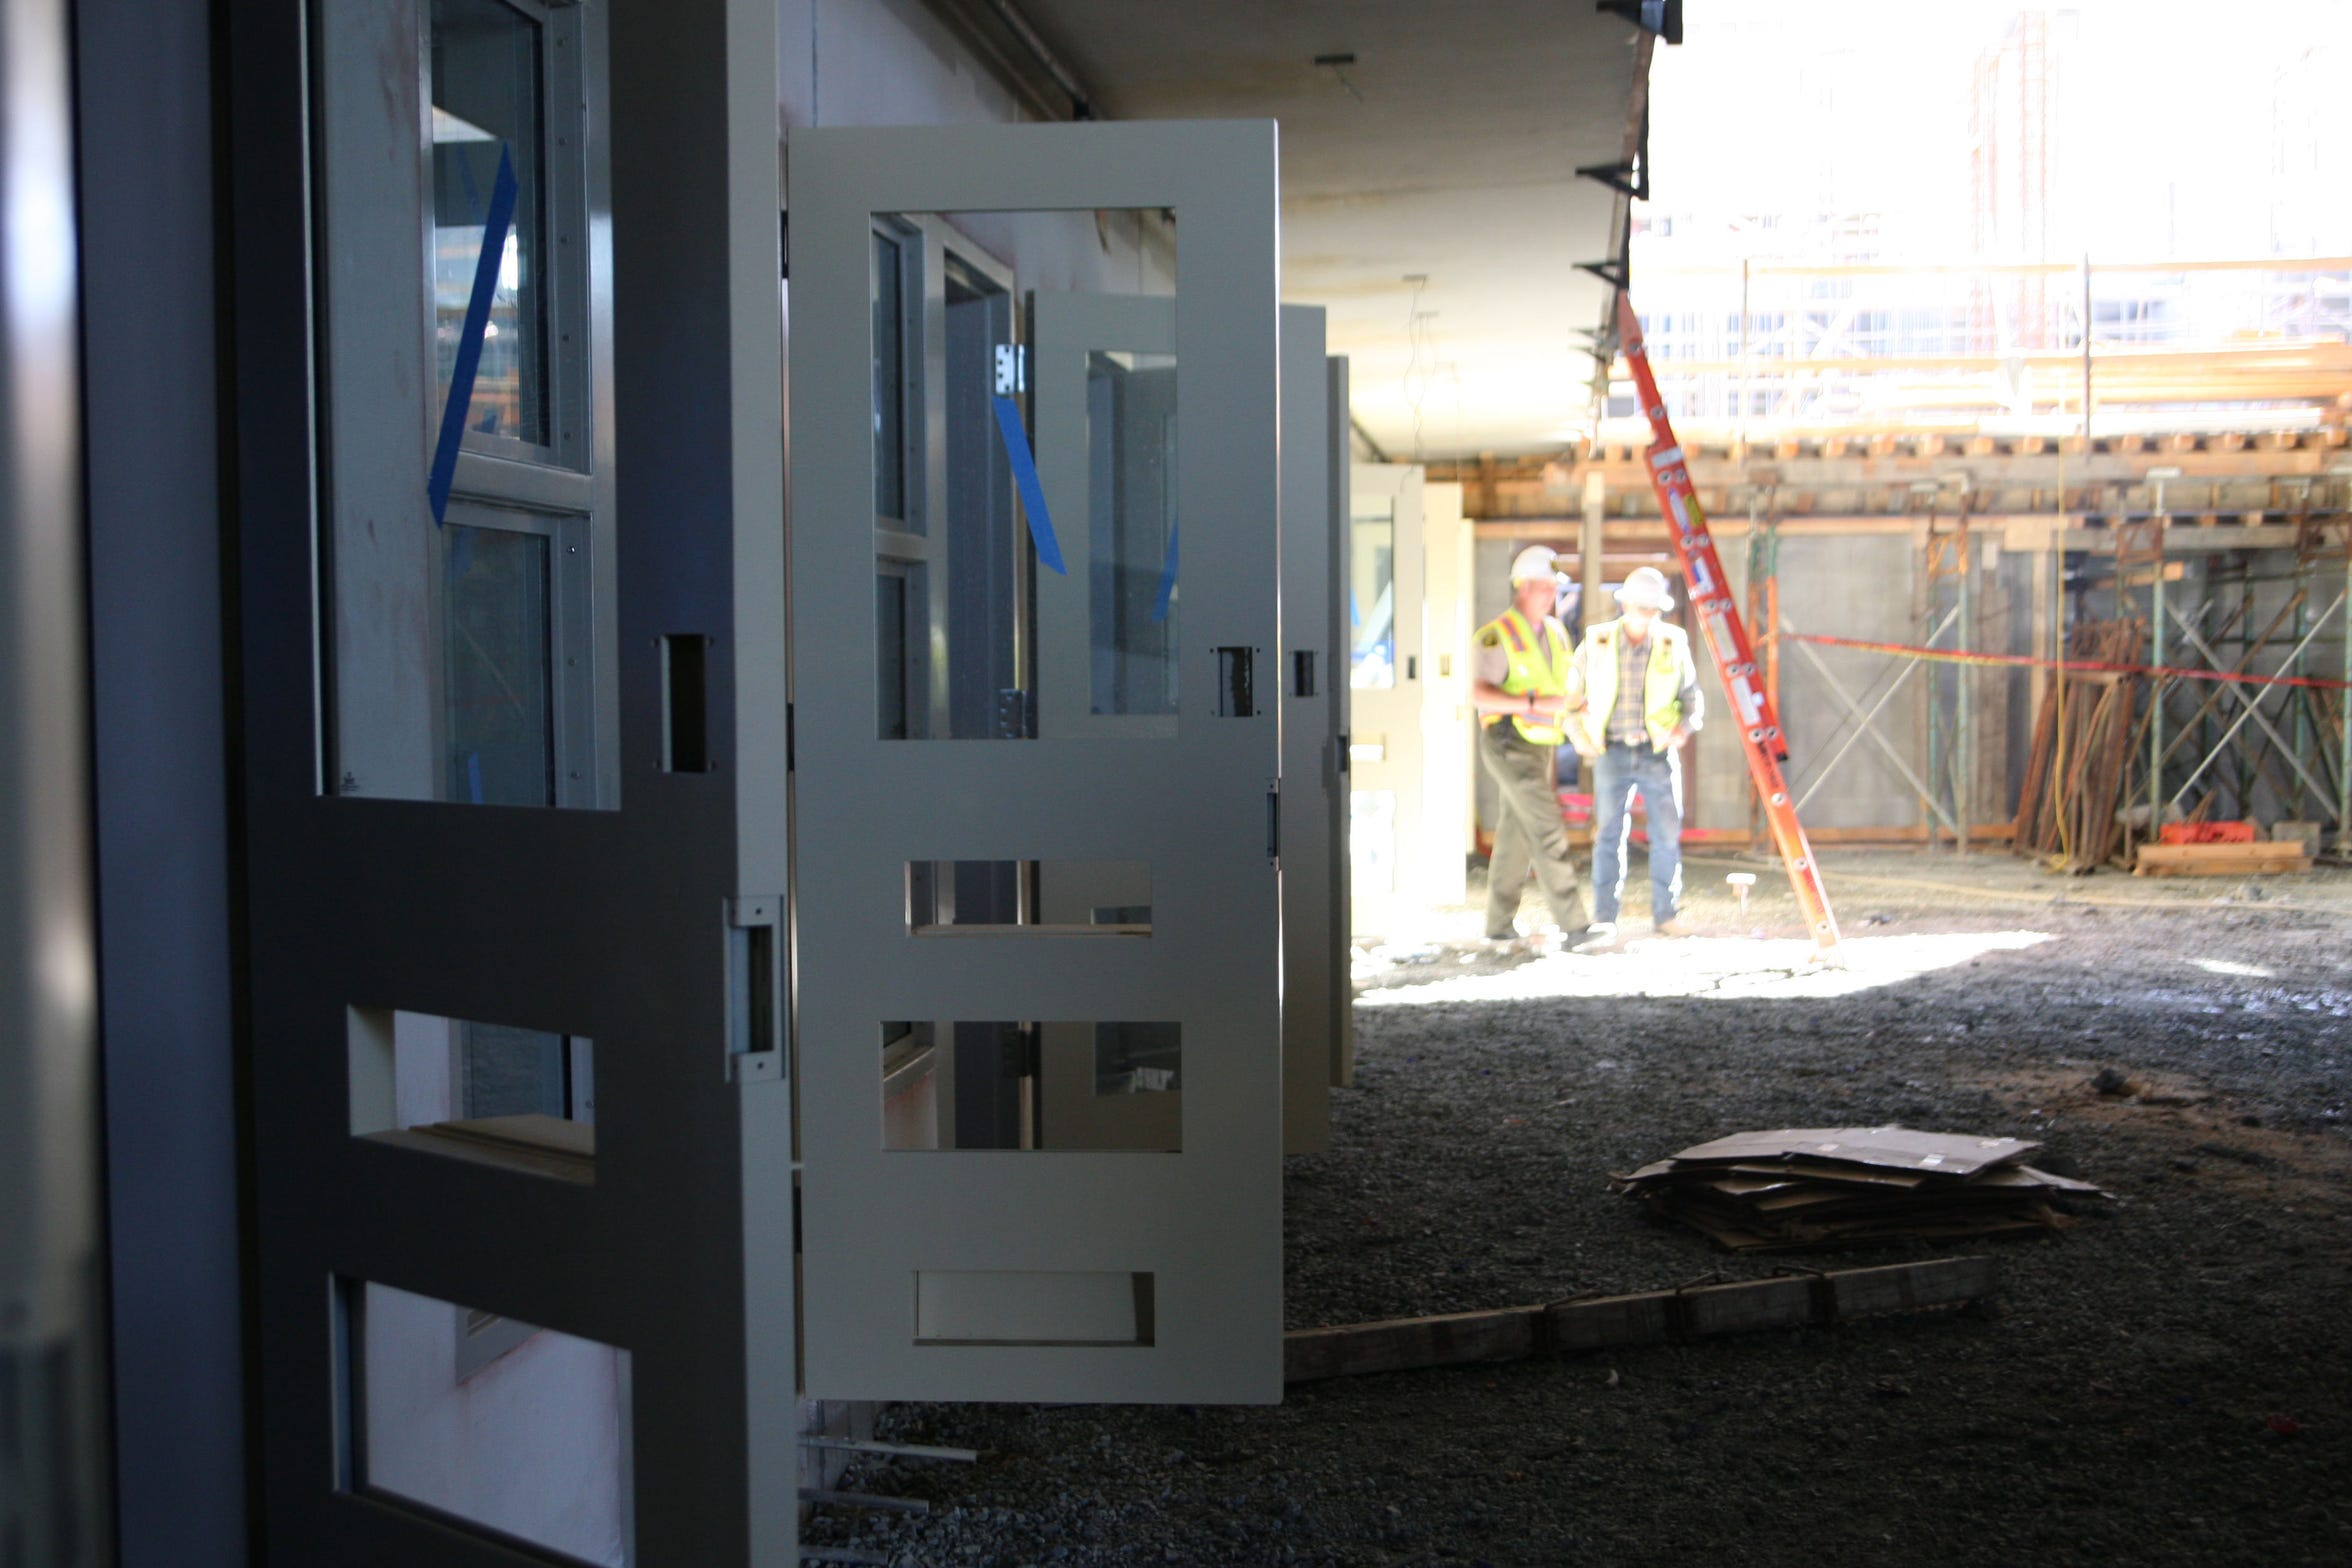 Cell doors hang open on an unfinished floor of the Monterey County Jail.